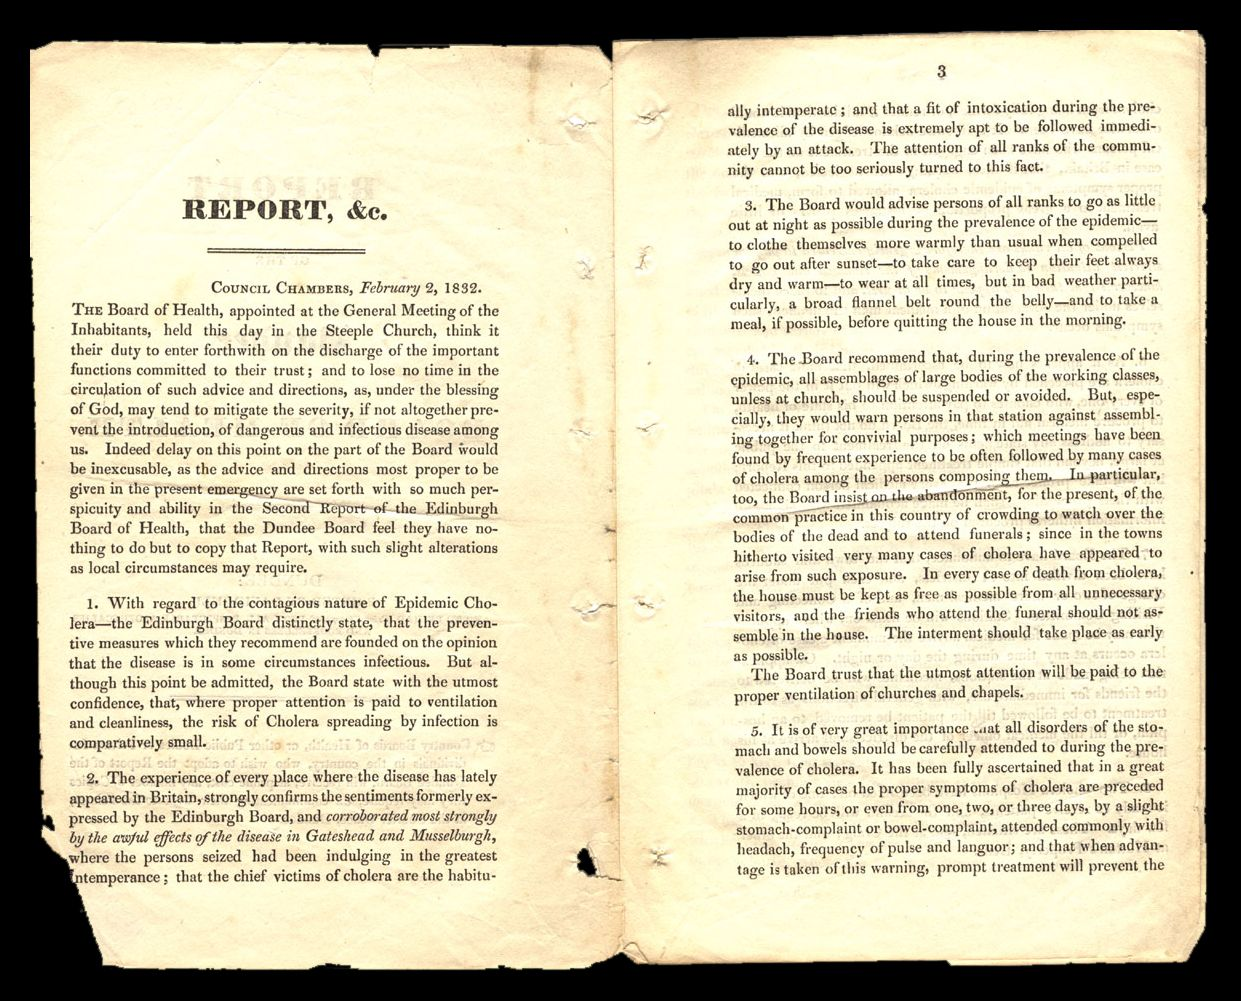 Report of the Board of Health, Cholera